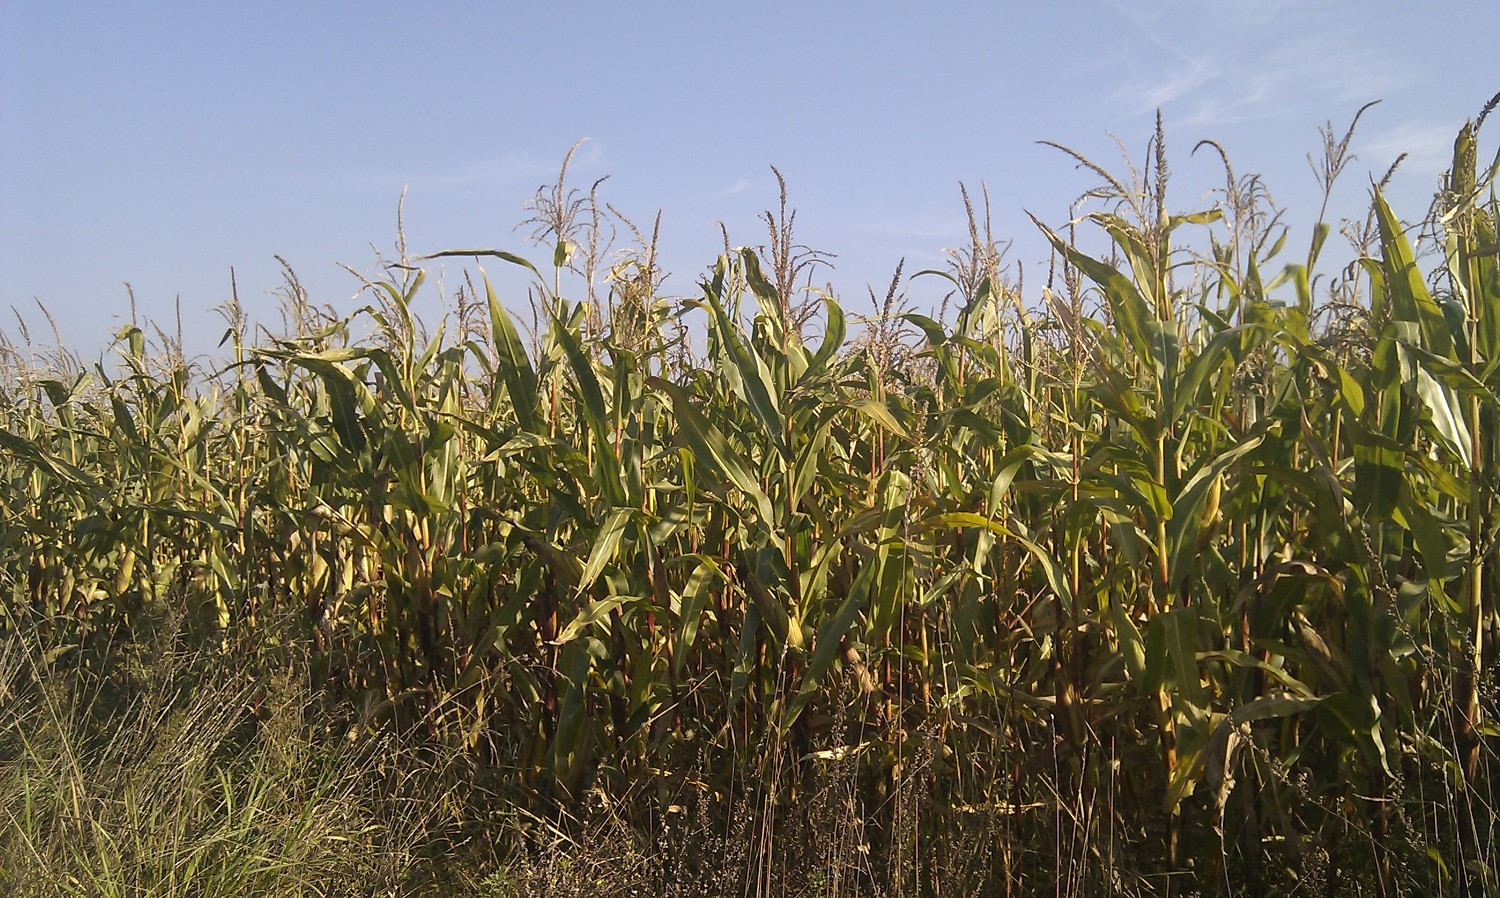 Subsidisation of biogas from maize silage not justified